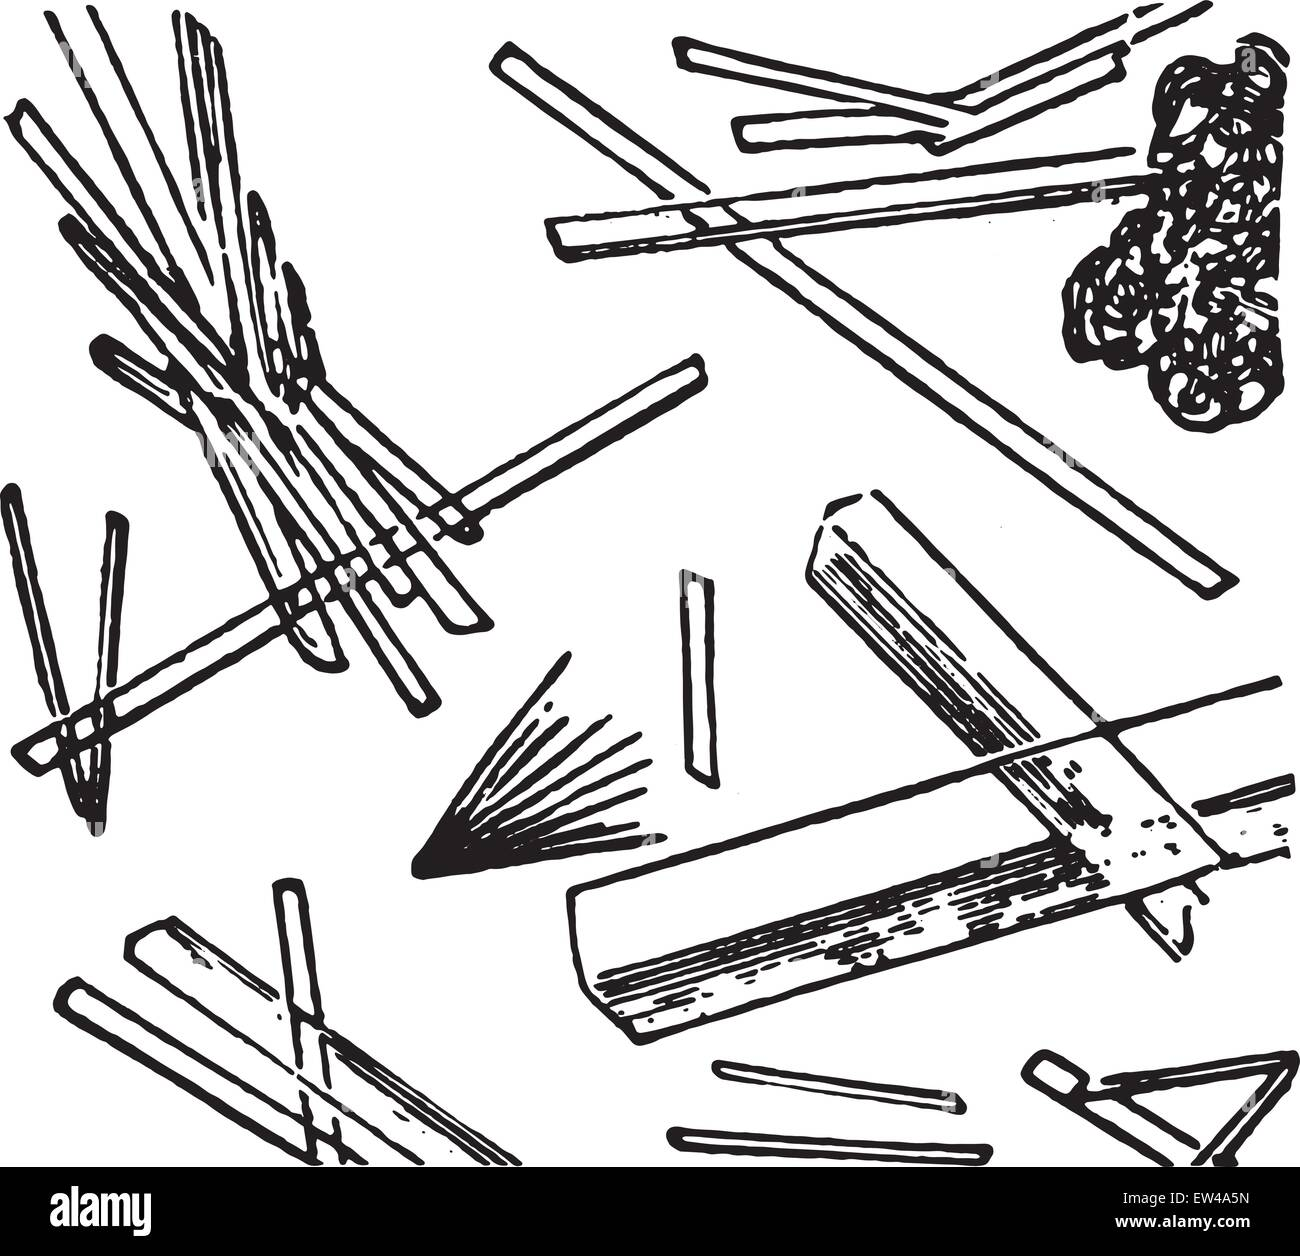 Calcium sulphate, elongated transparent needles or tablets, vintage engraved illustration. - Stock Vector